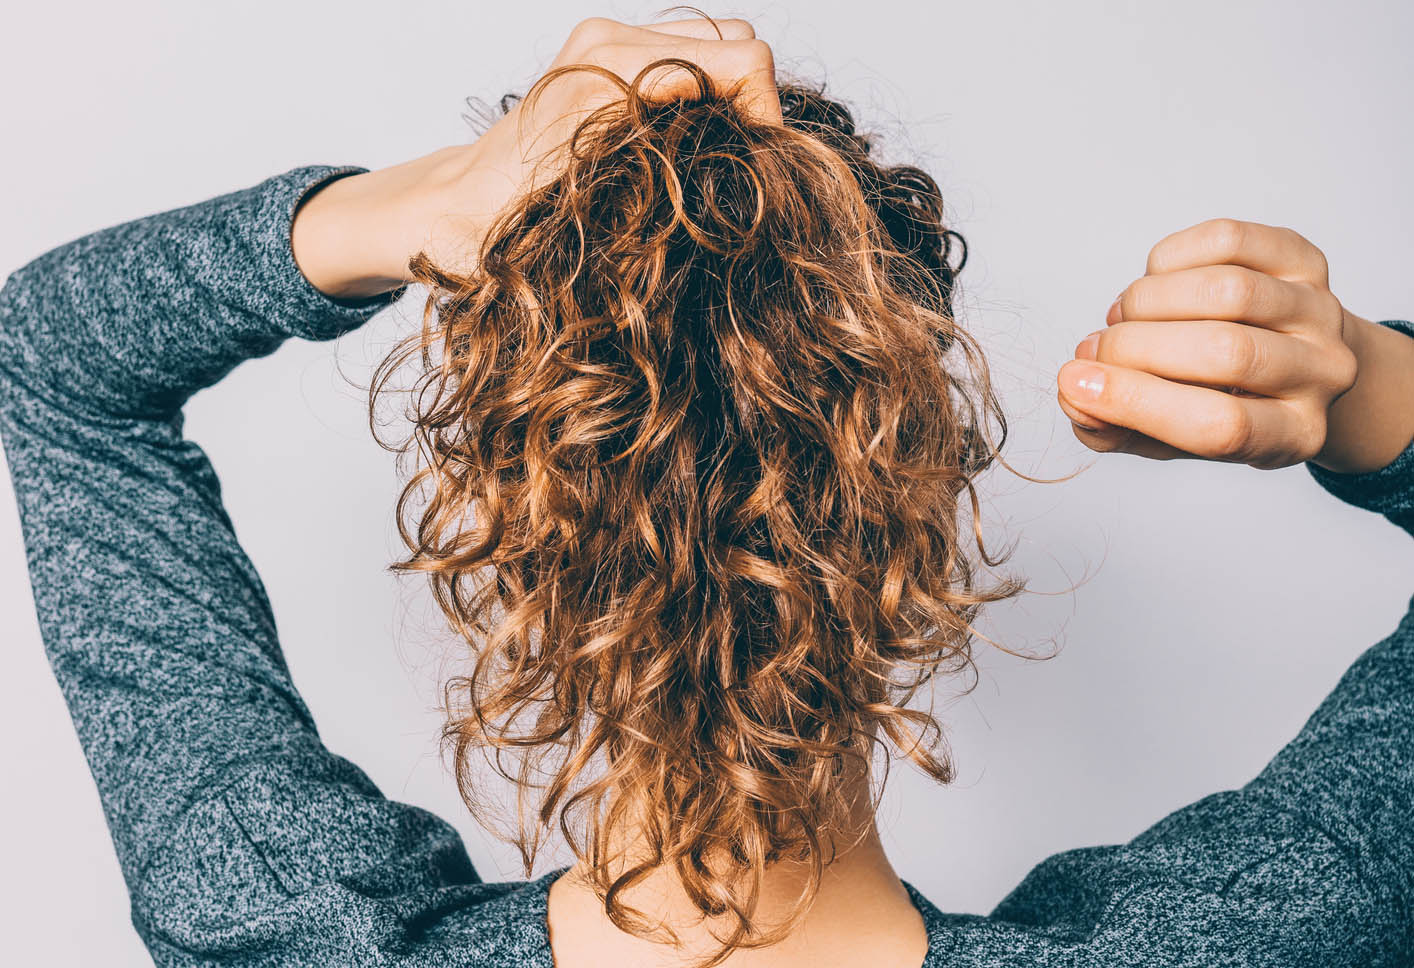 Dryer Sheets for Hair Frizz